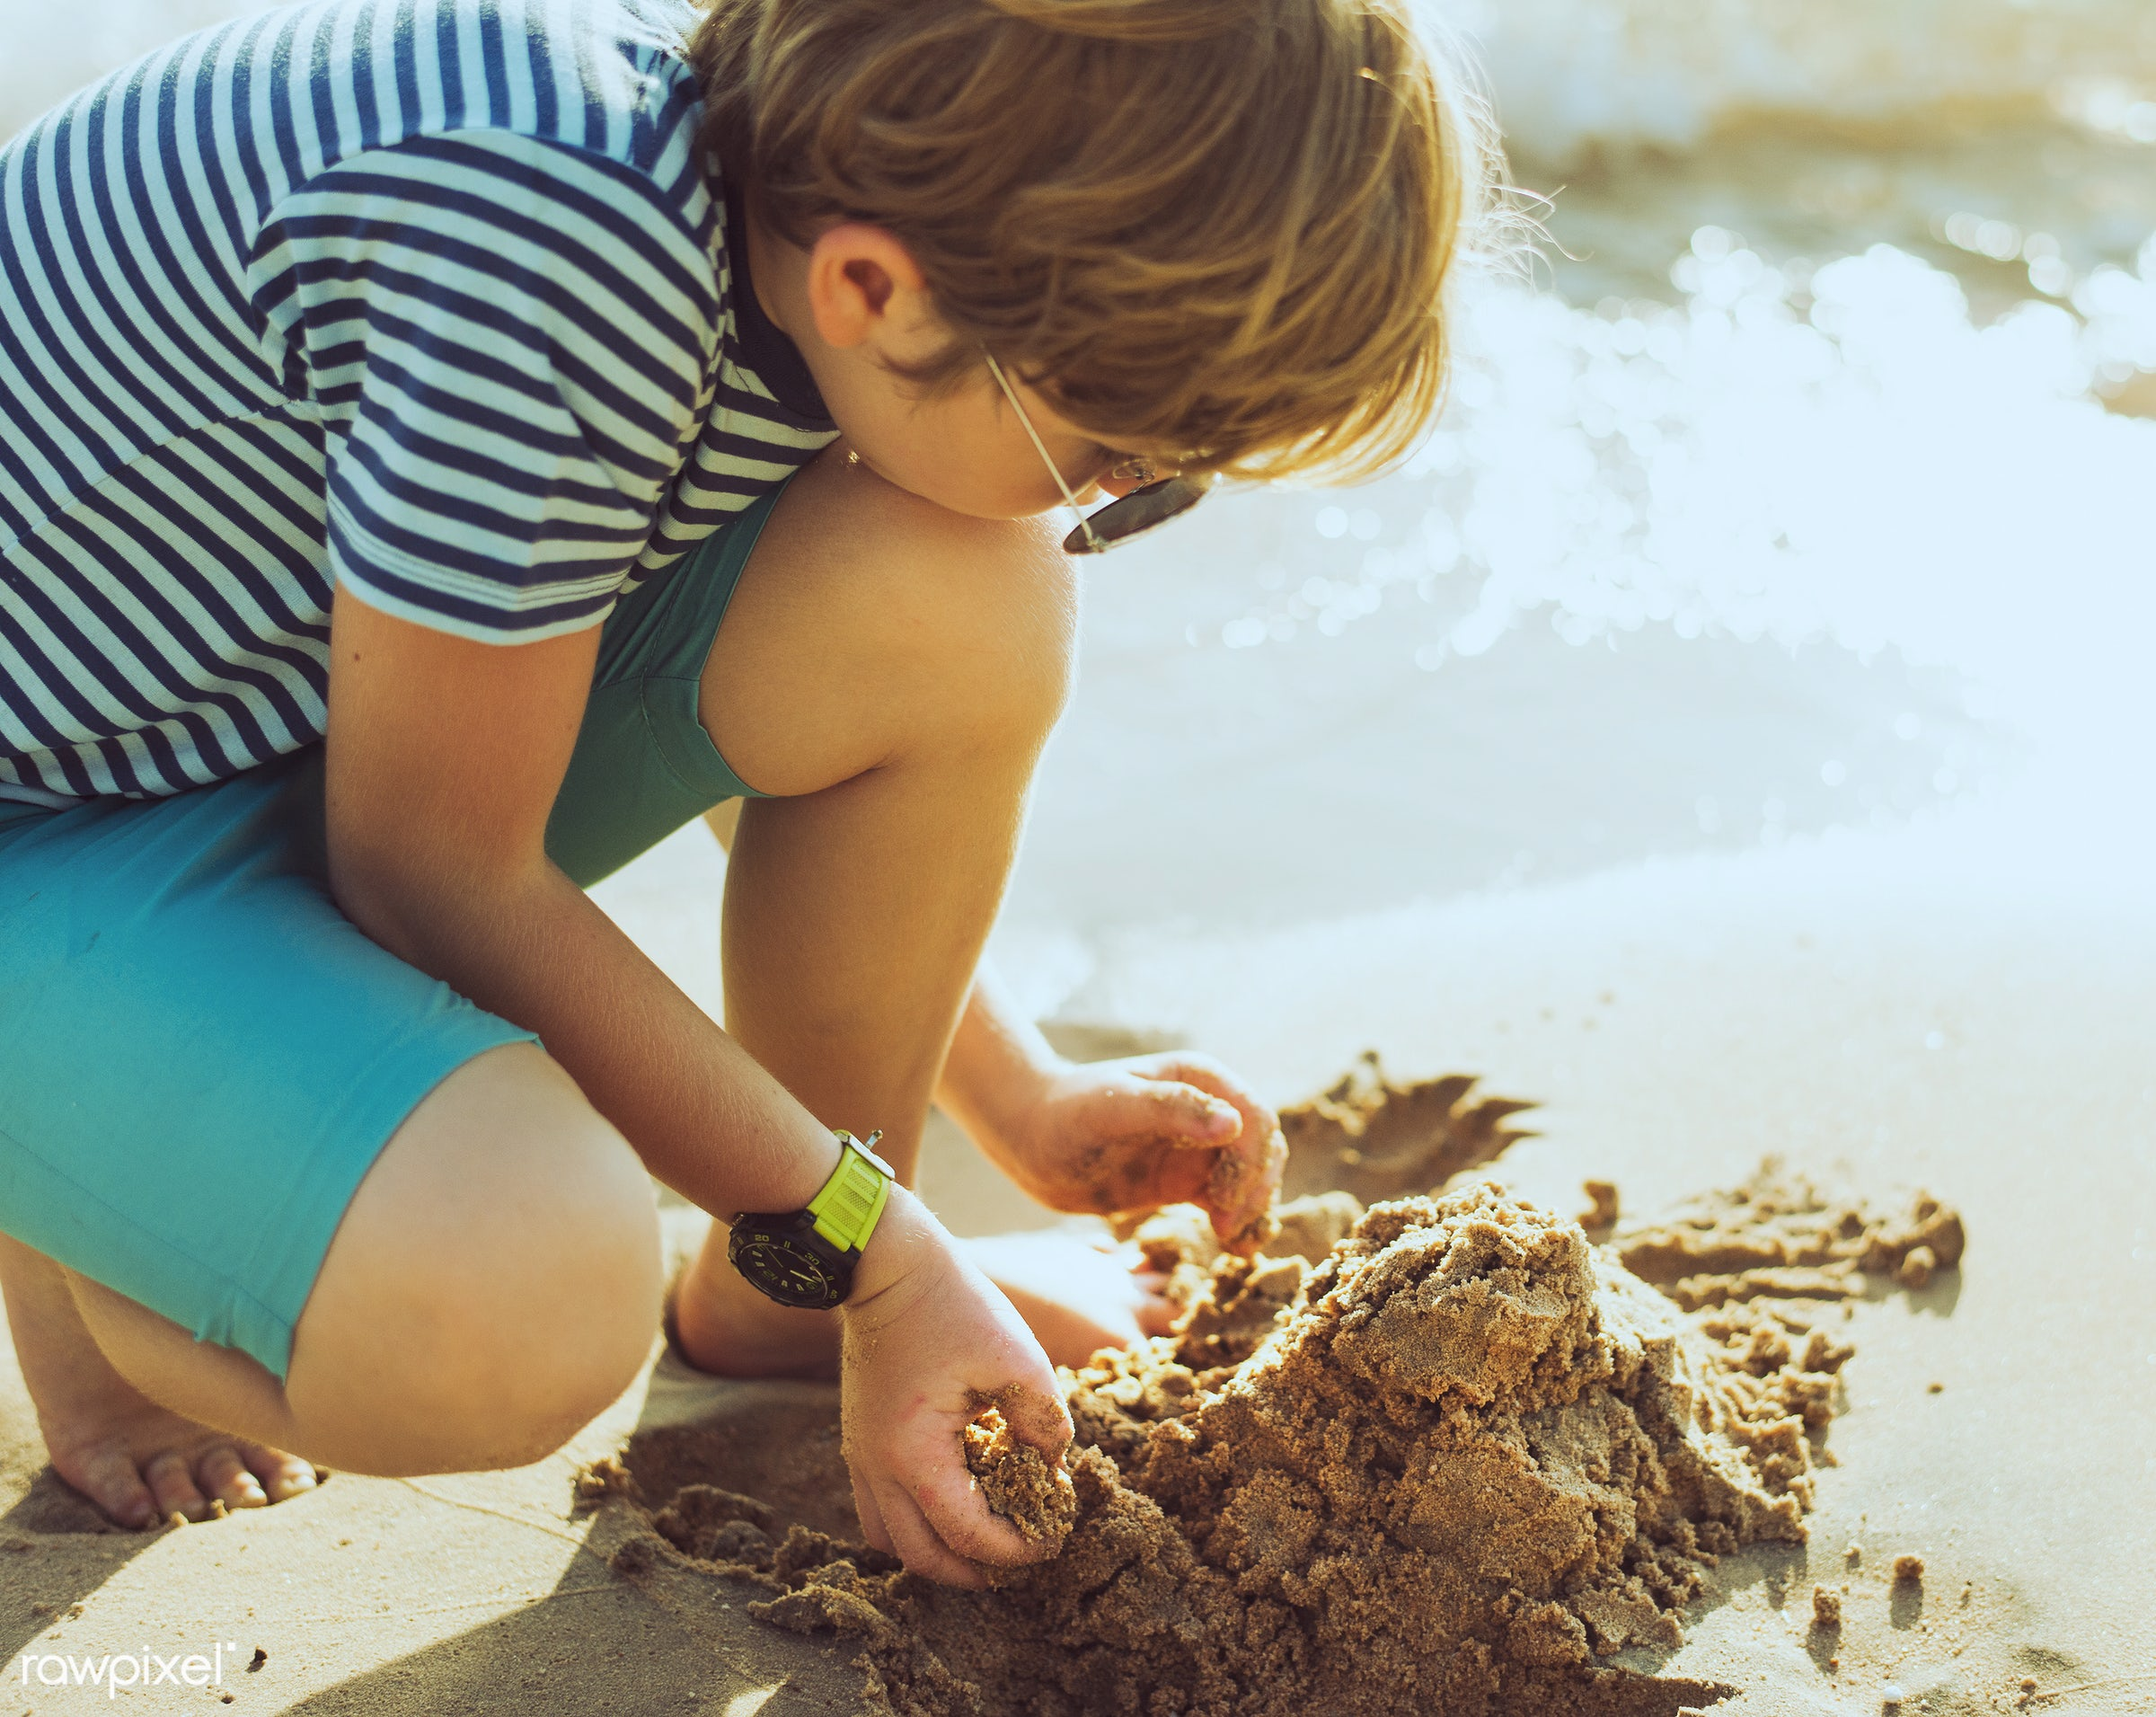 shore, beach, kid, child, playing, nature, sand, crouch, sea, fun, young, holiday, vacation, bay, summer, boy